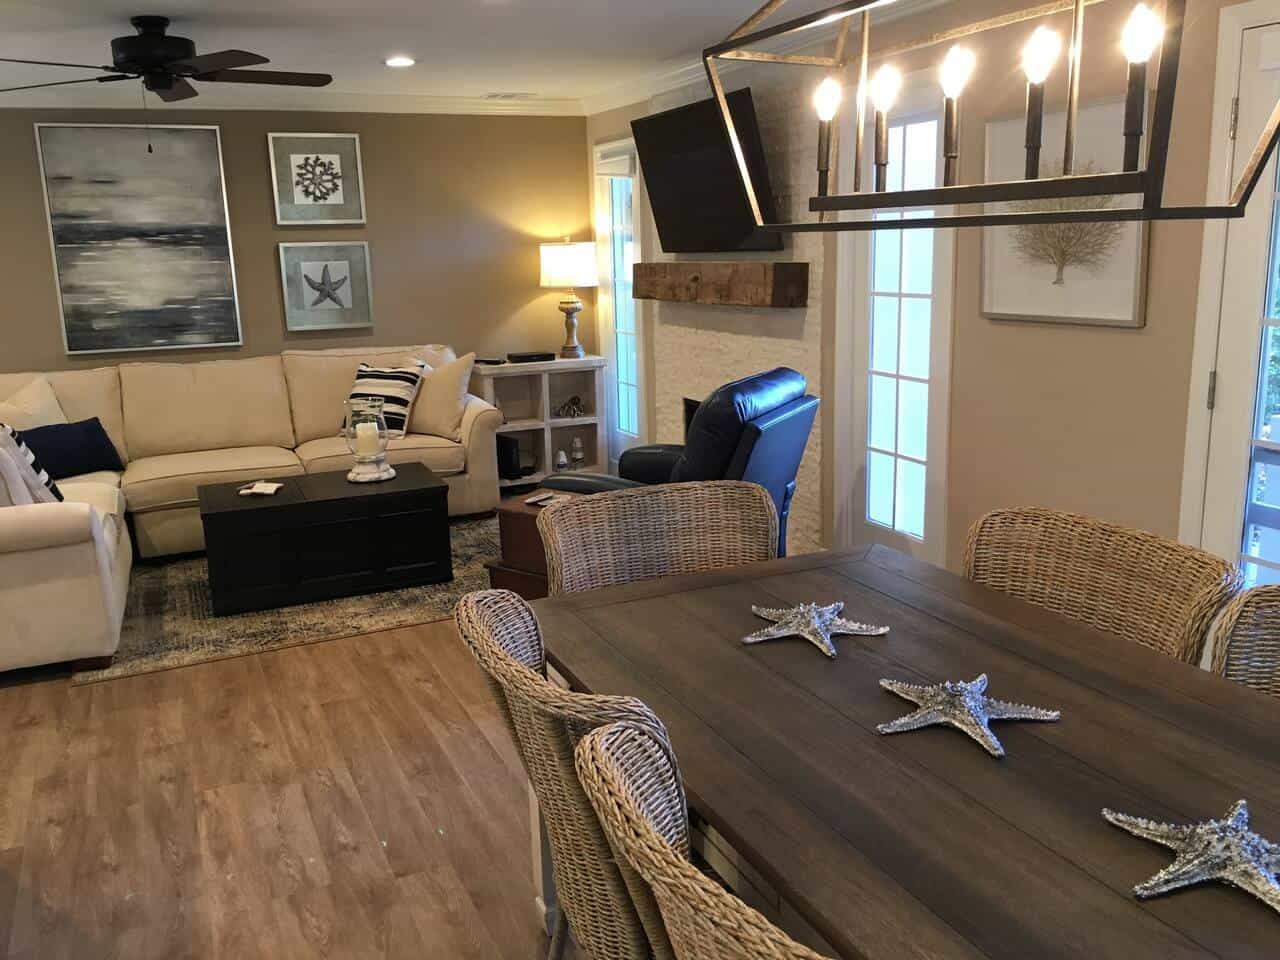 Image of Airbnb rental in Hilton Head